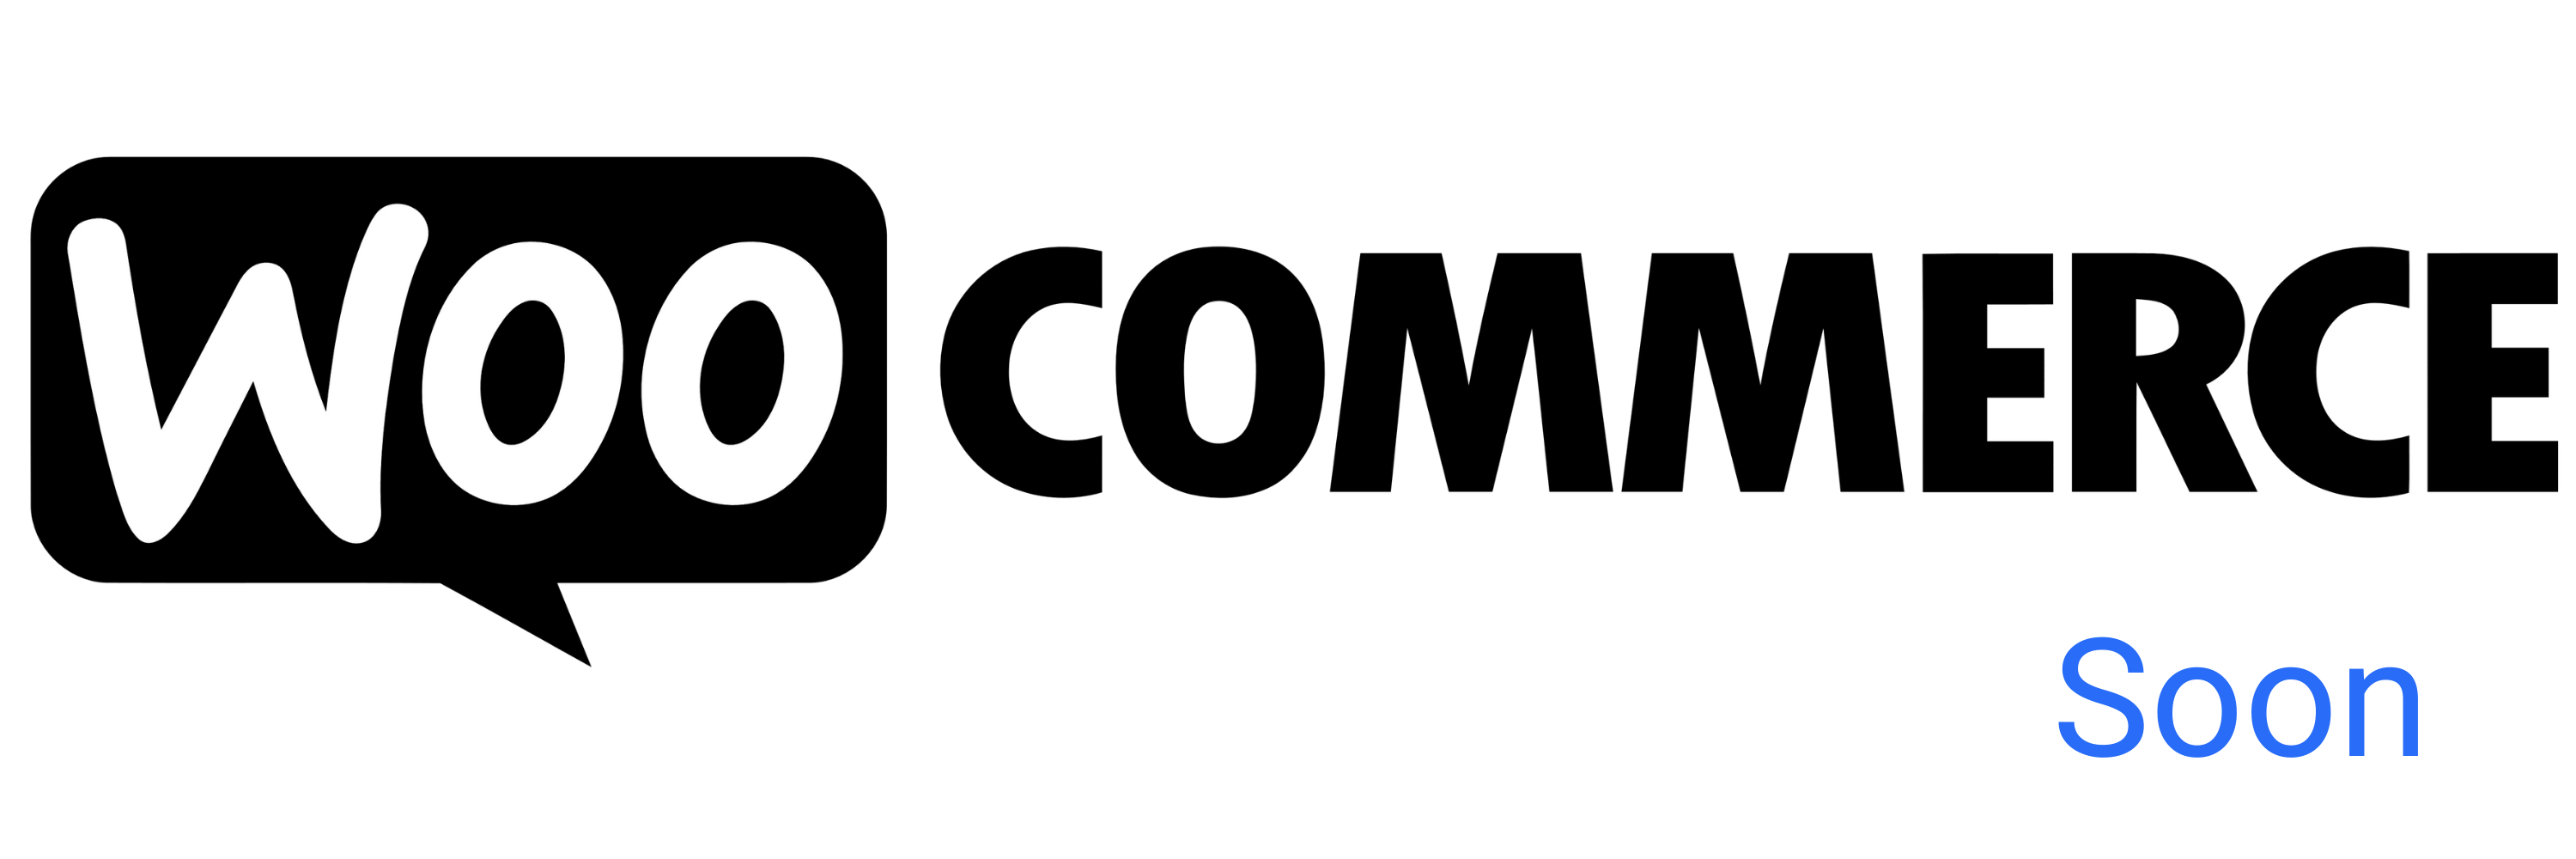 woo commerce logo hamarosan